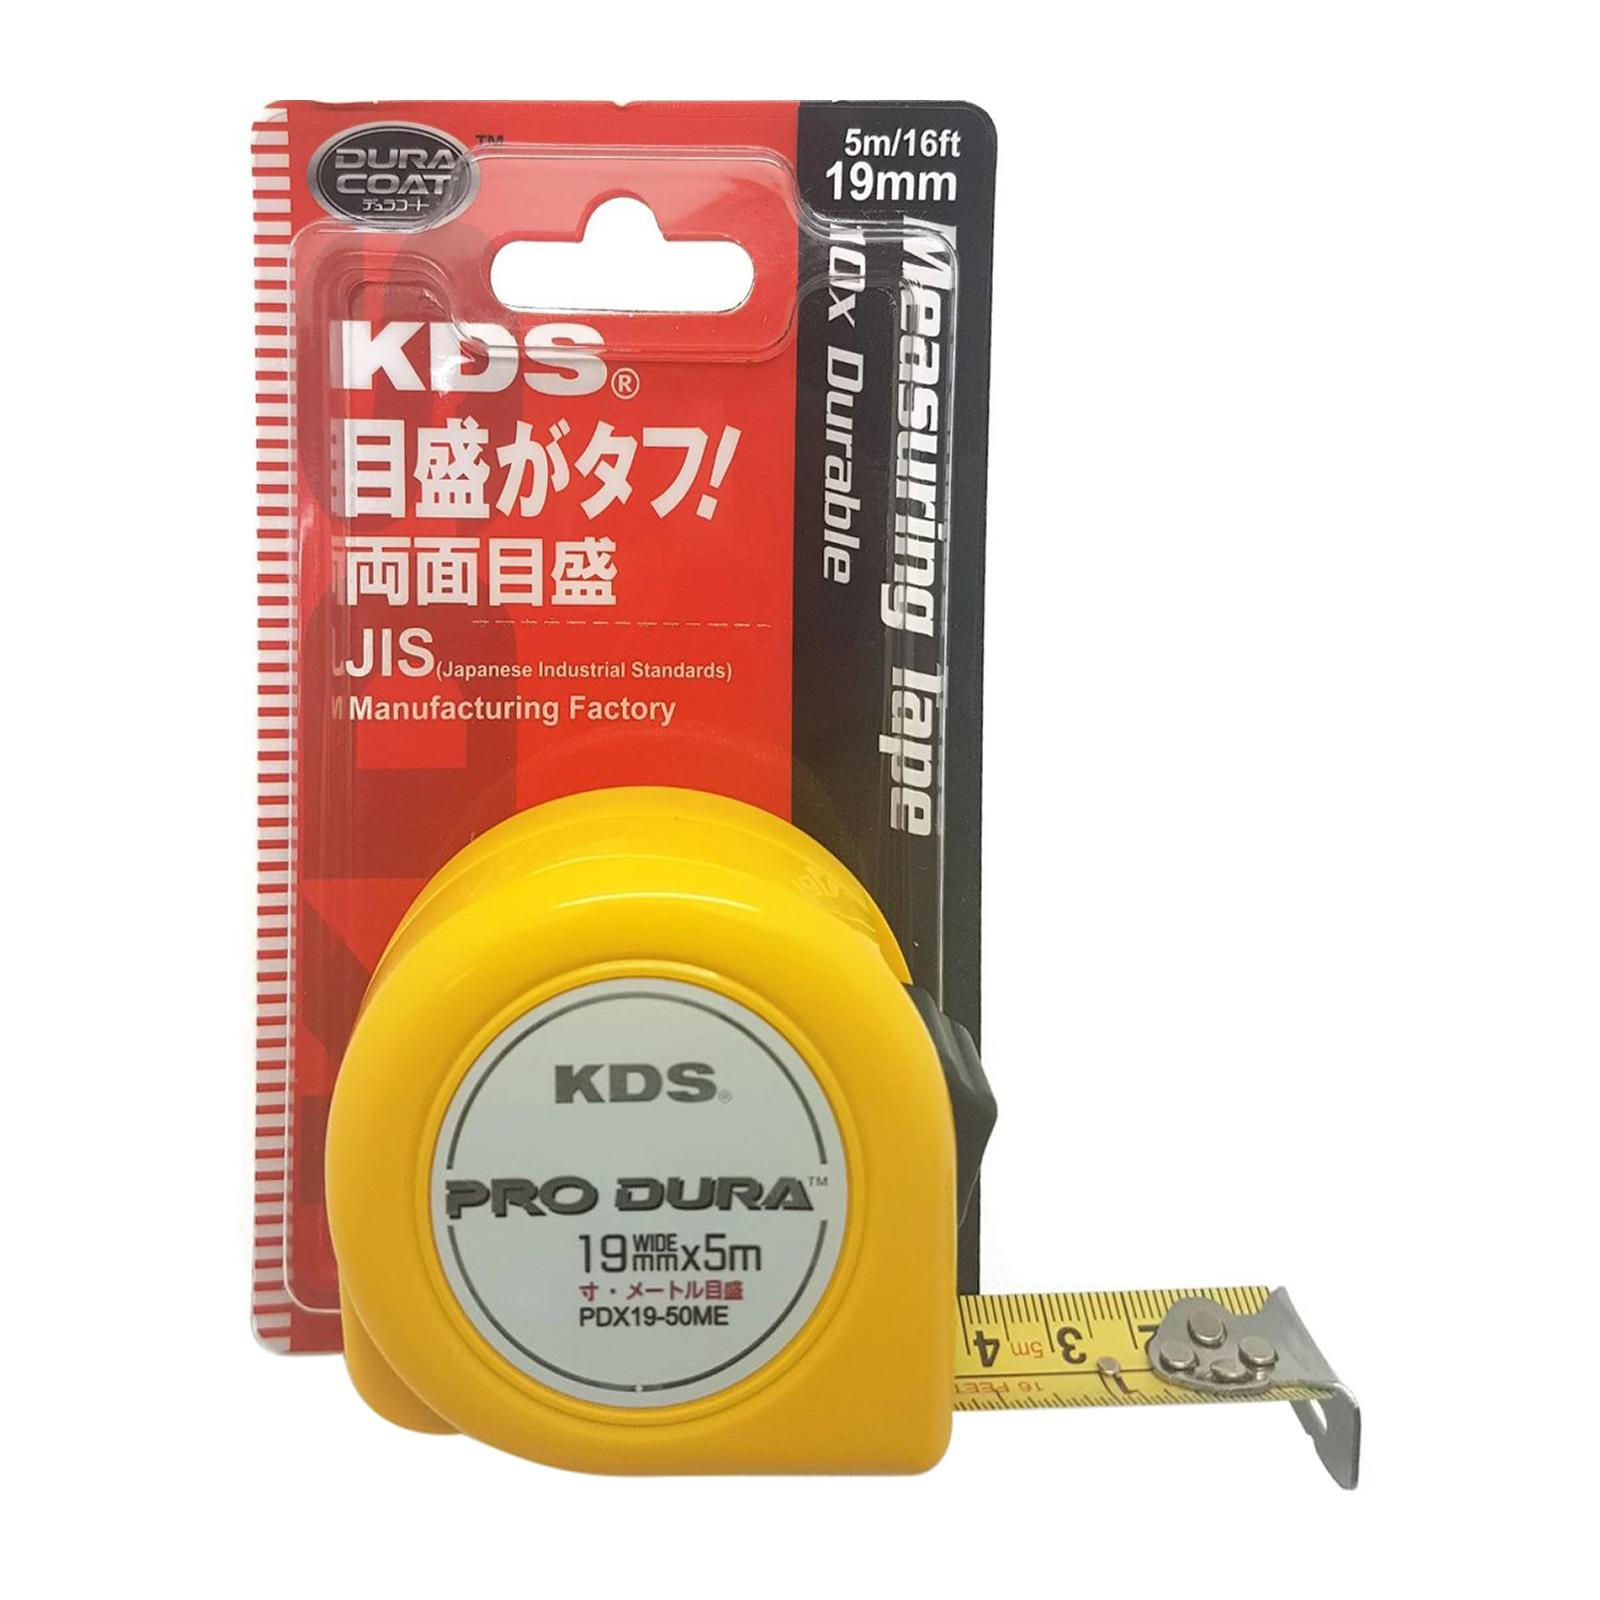 KDS Pro Dura Double Sided Measuring Tape 5M 19MM Wide